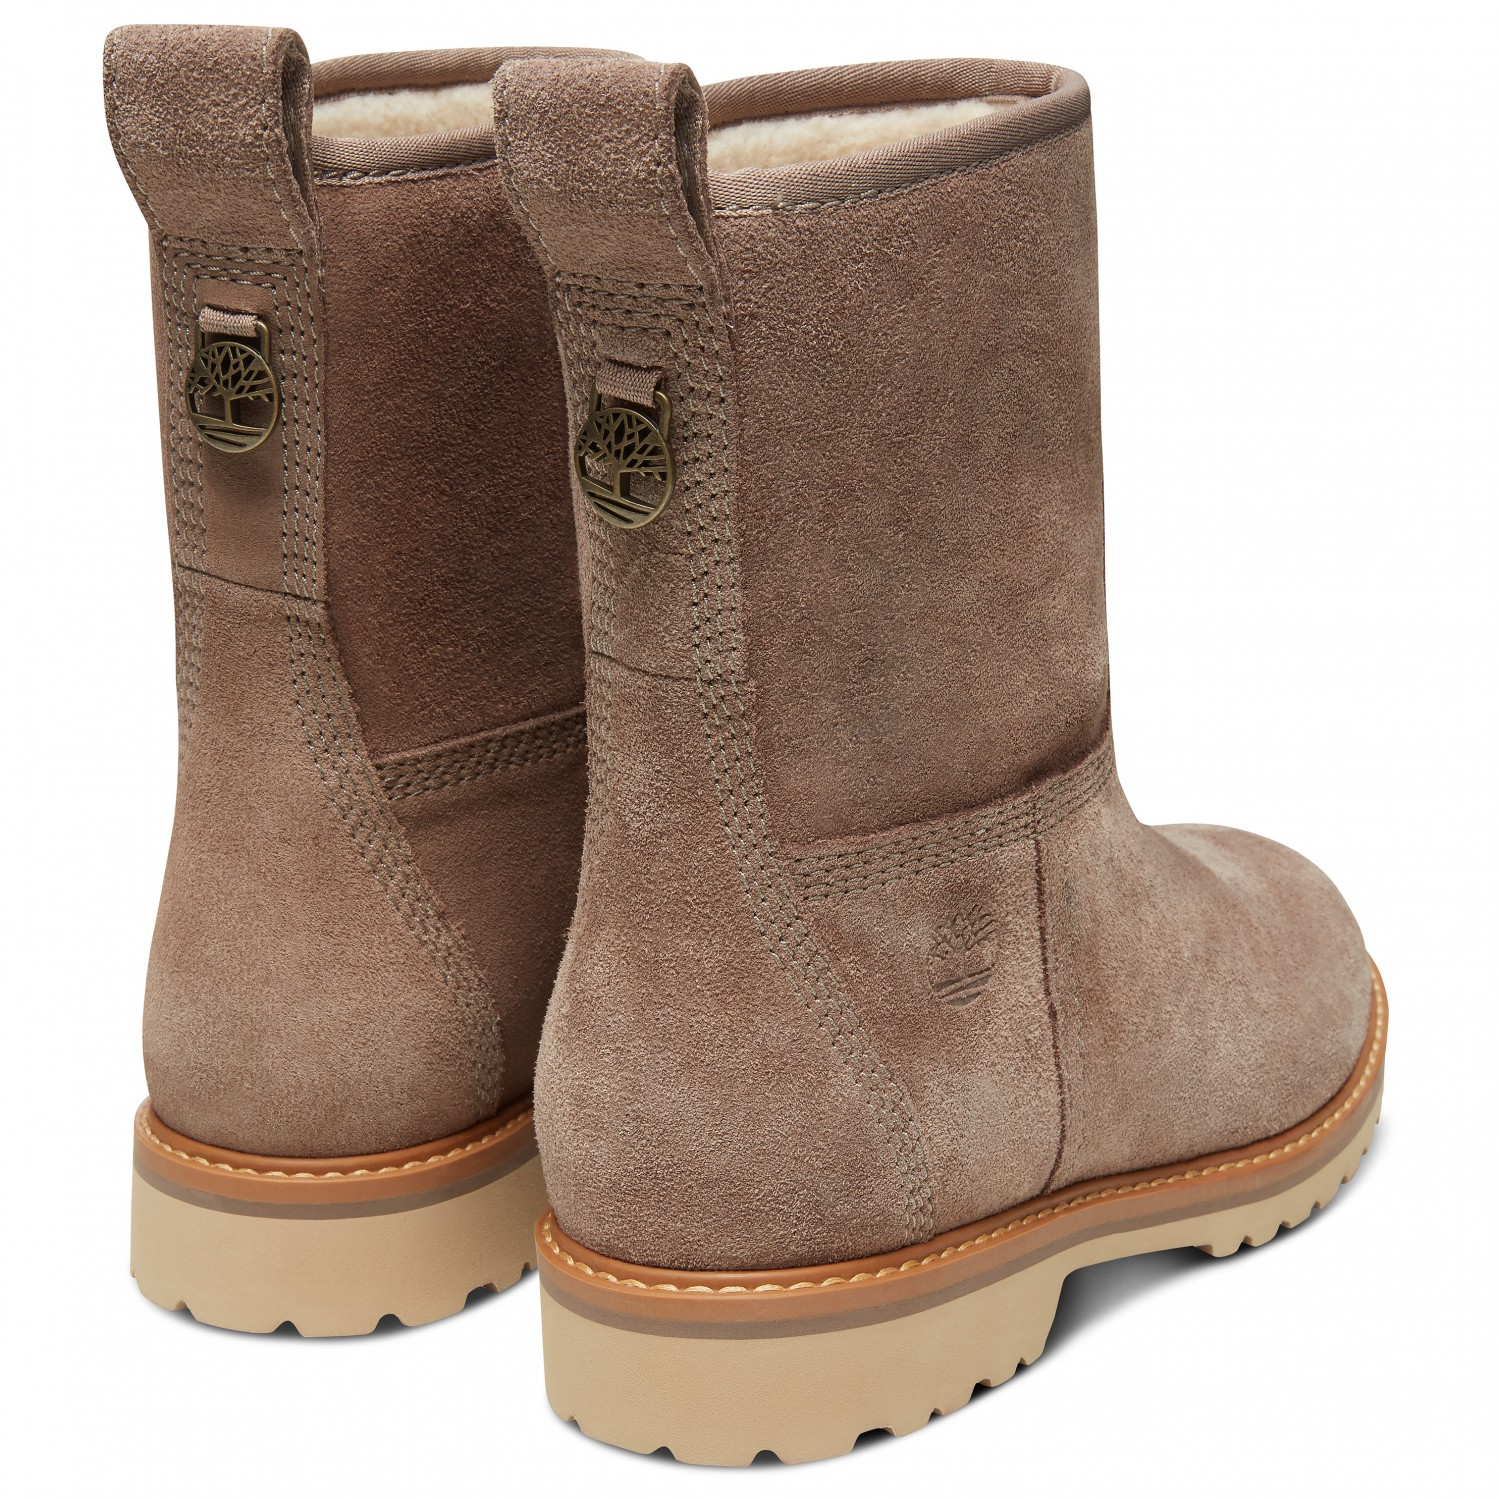 c6fef90a7 Timberland - Women's Chamonix Valley Winter - Chaussures d'hiver - Dark  Rubber | 9,5 (US)